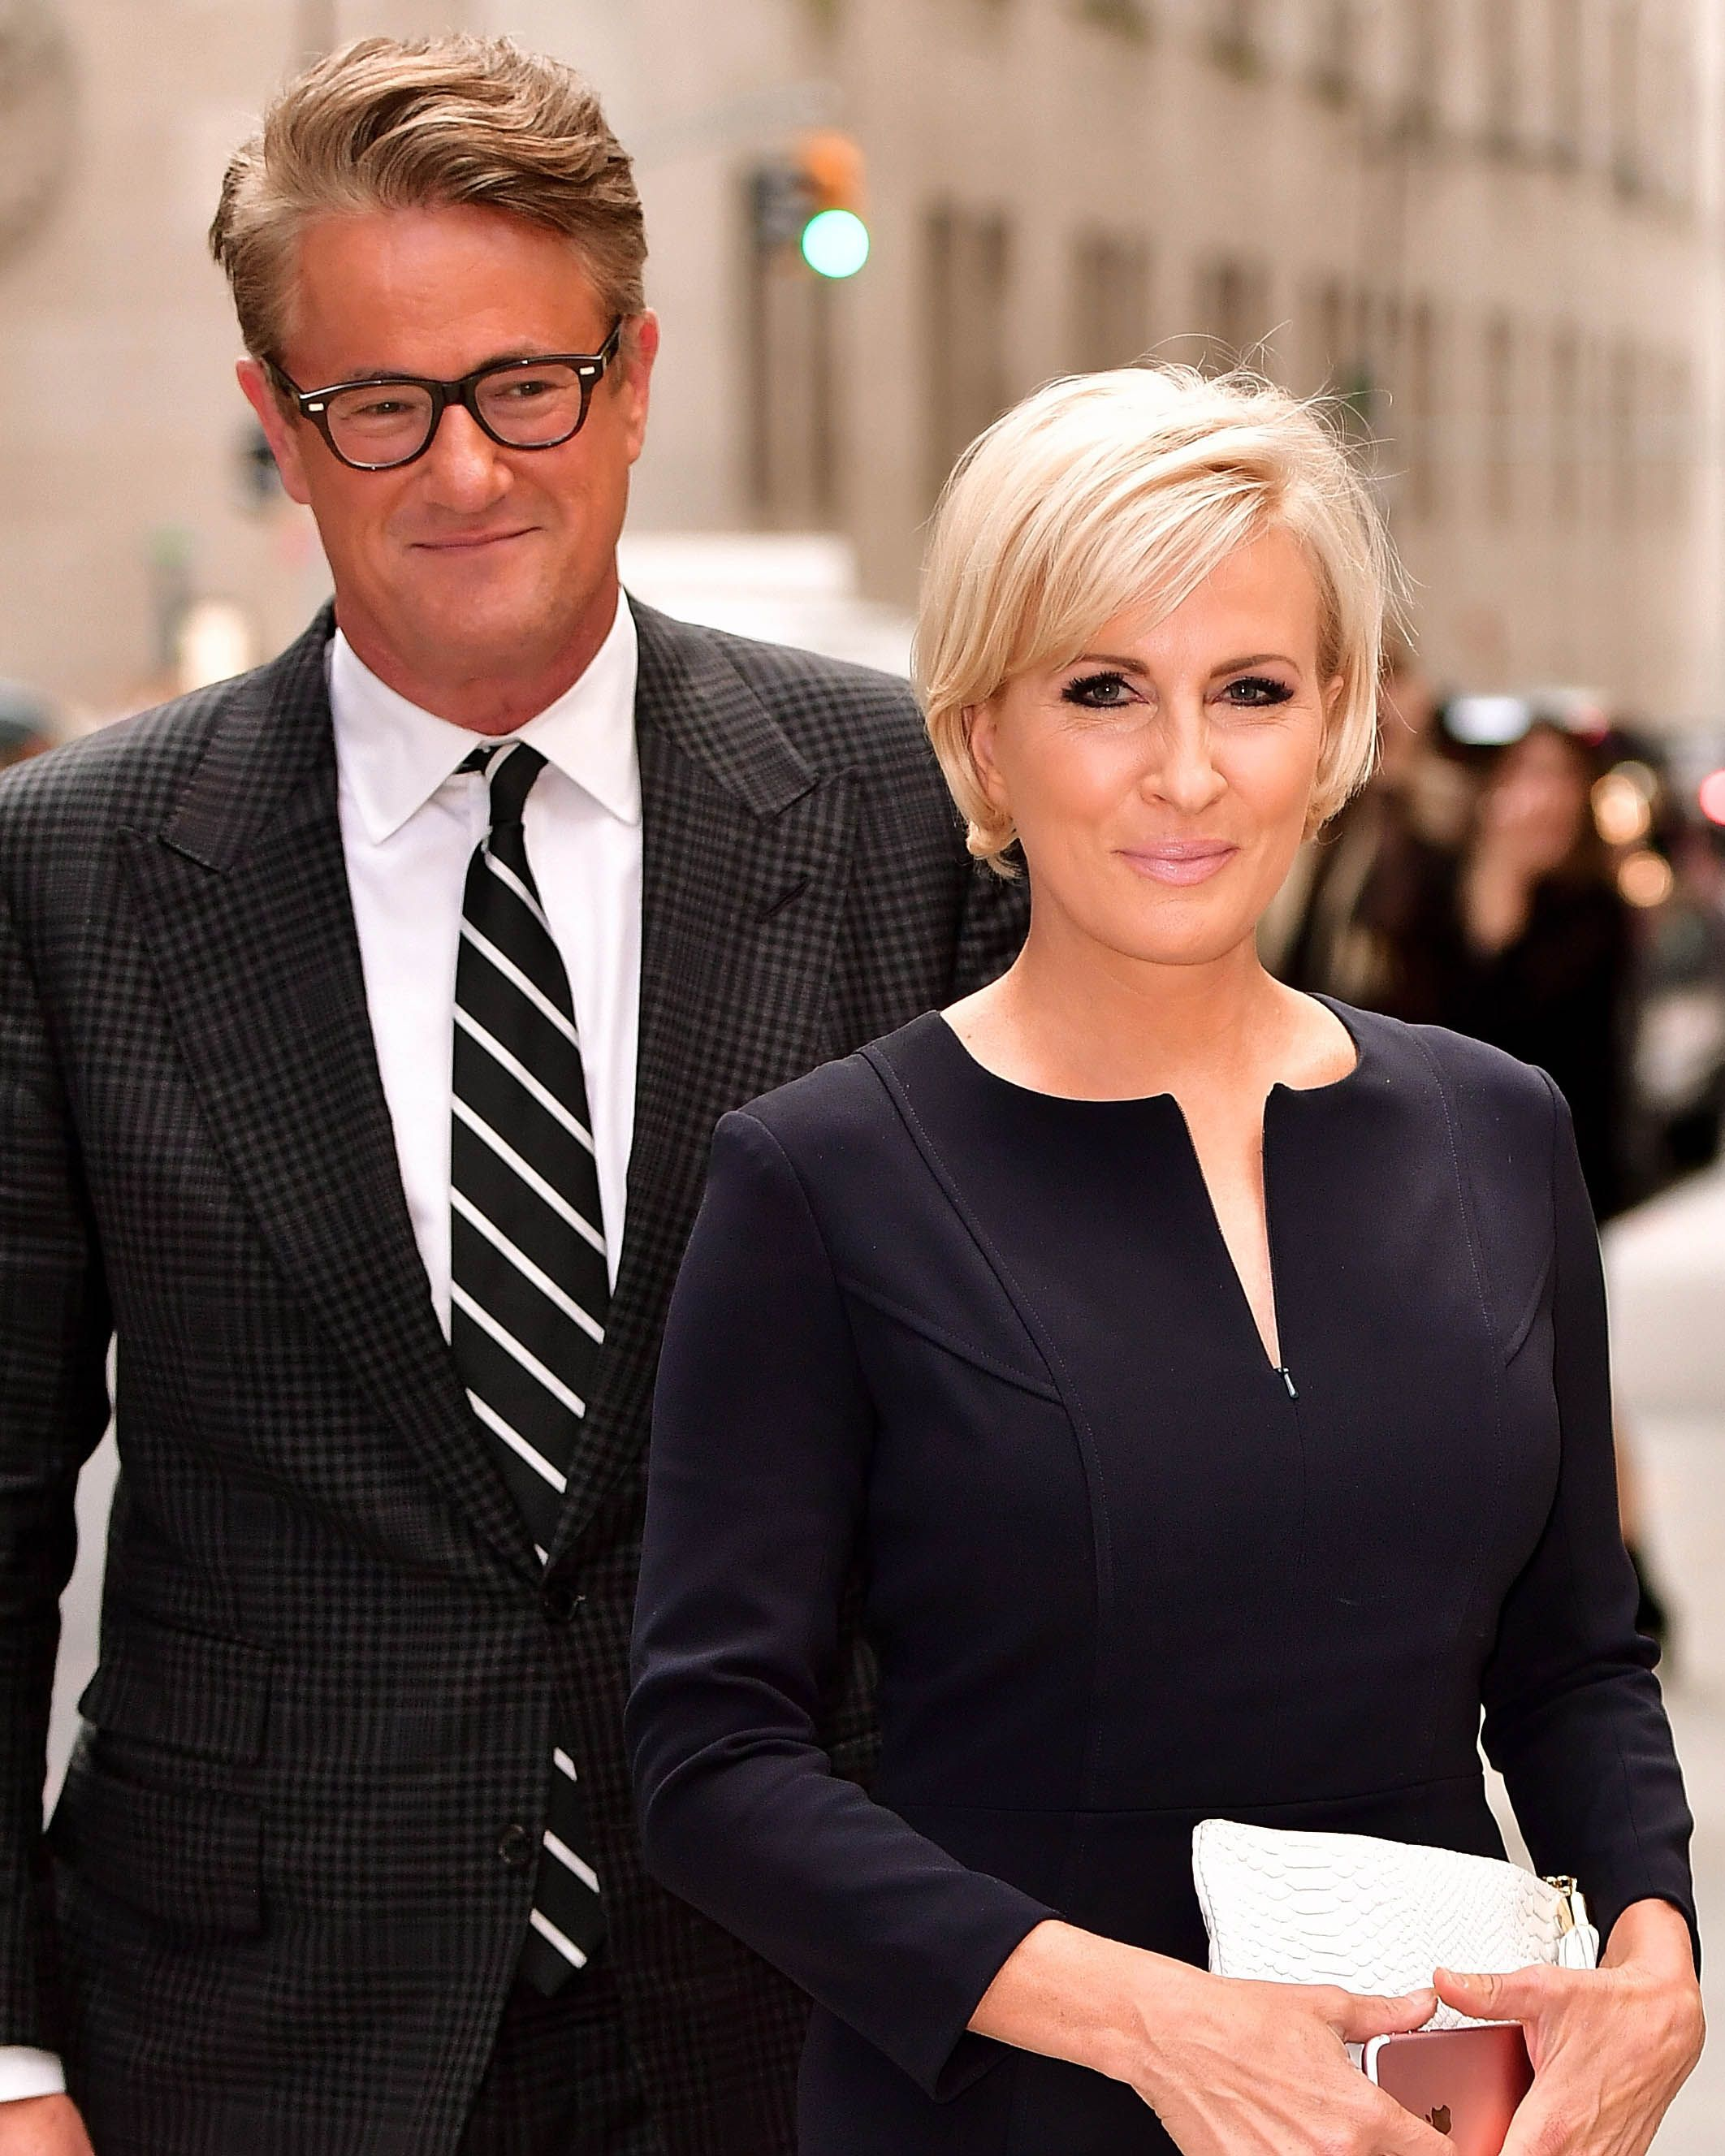 Joe Scarborough and Mika Brzezinski.